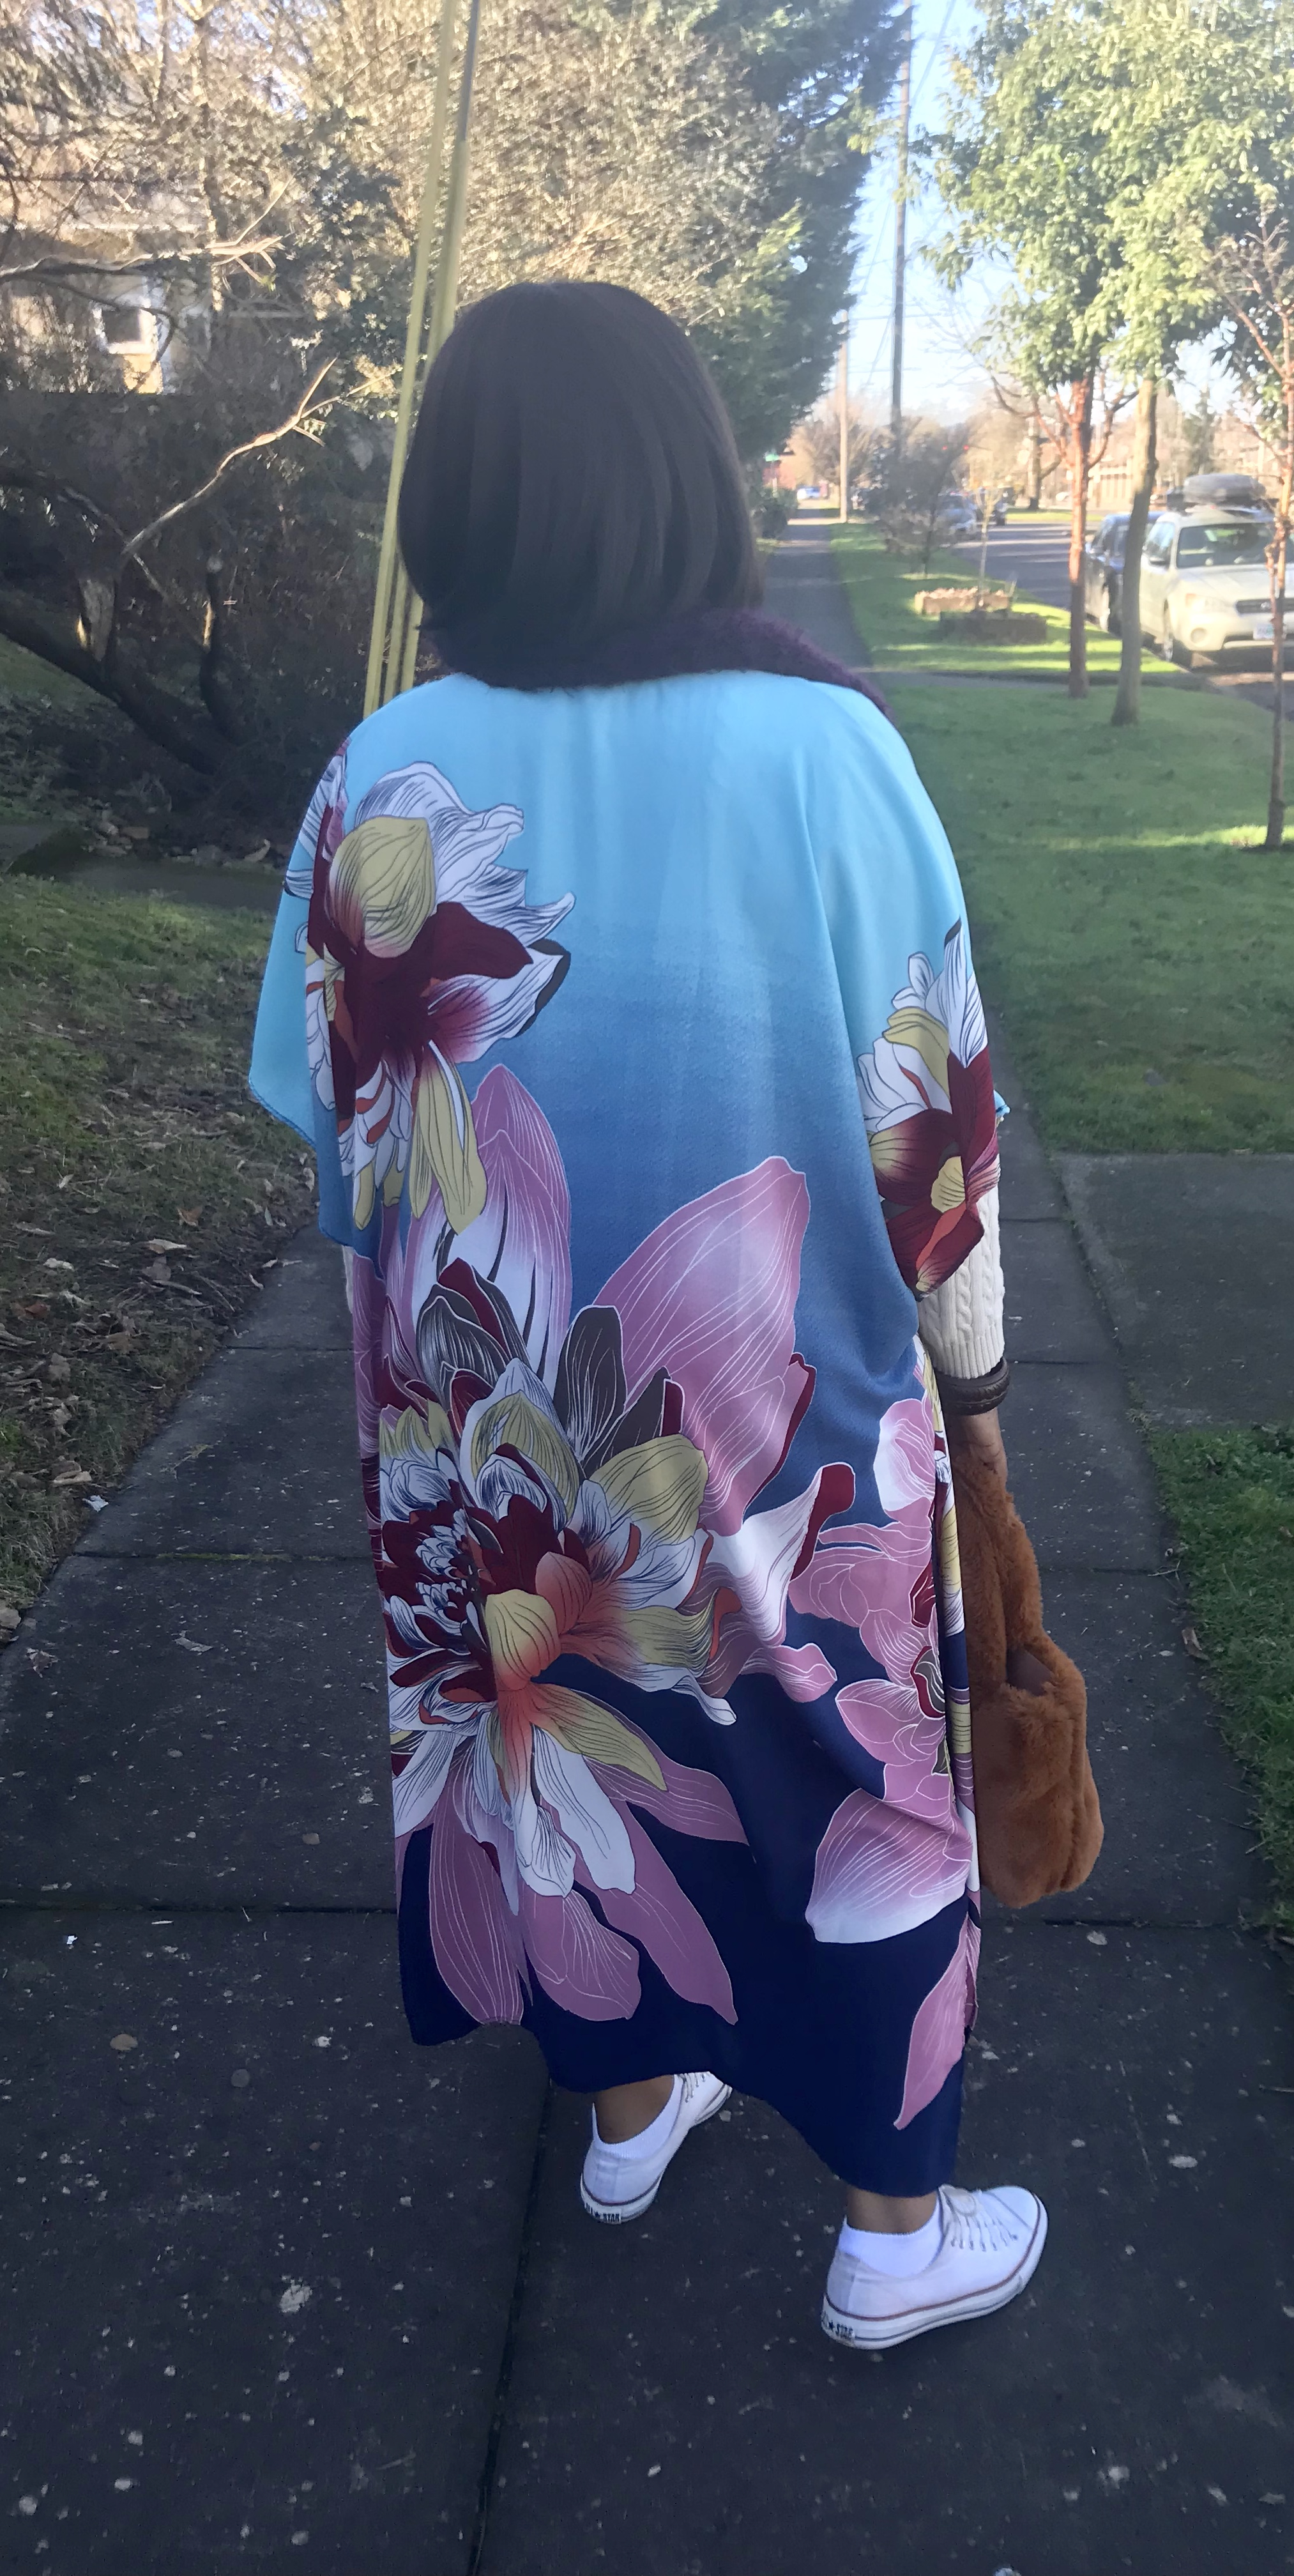 Caftans - Caftans are an easy way to add color and interest to an outfit year round without bulk of a coat this one is from fashionnova Throw it on, dress it up or down